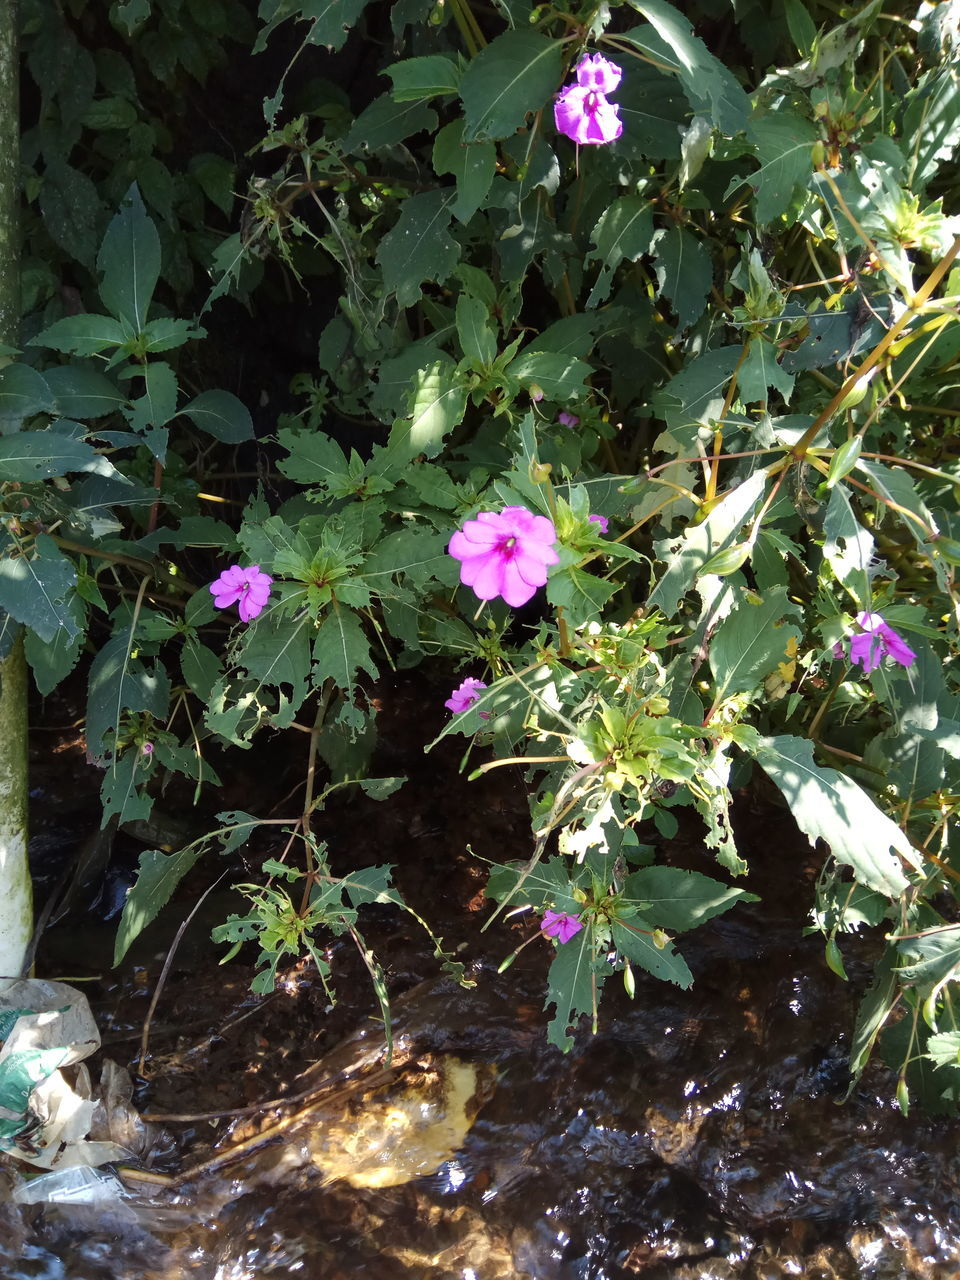 growth, flower, leaf, nature, plant, beauty in nature, green color, fragility, no people, freshness, blooming, outdoors, tree, day, periwinkle